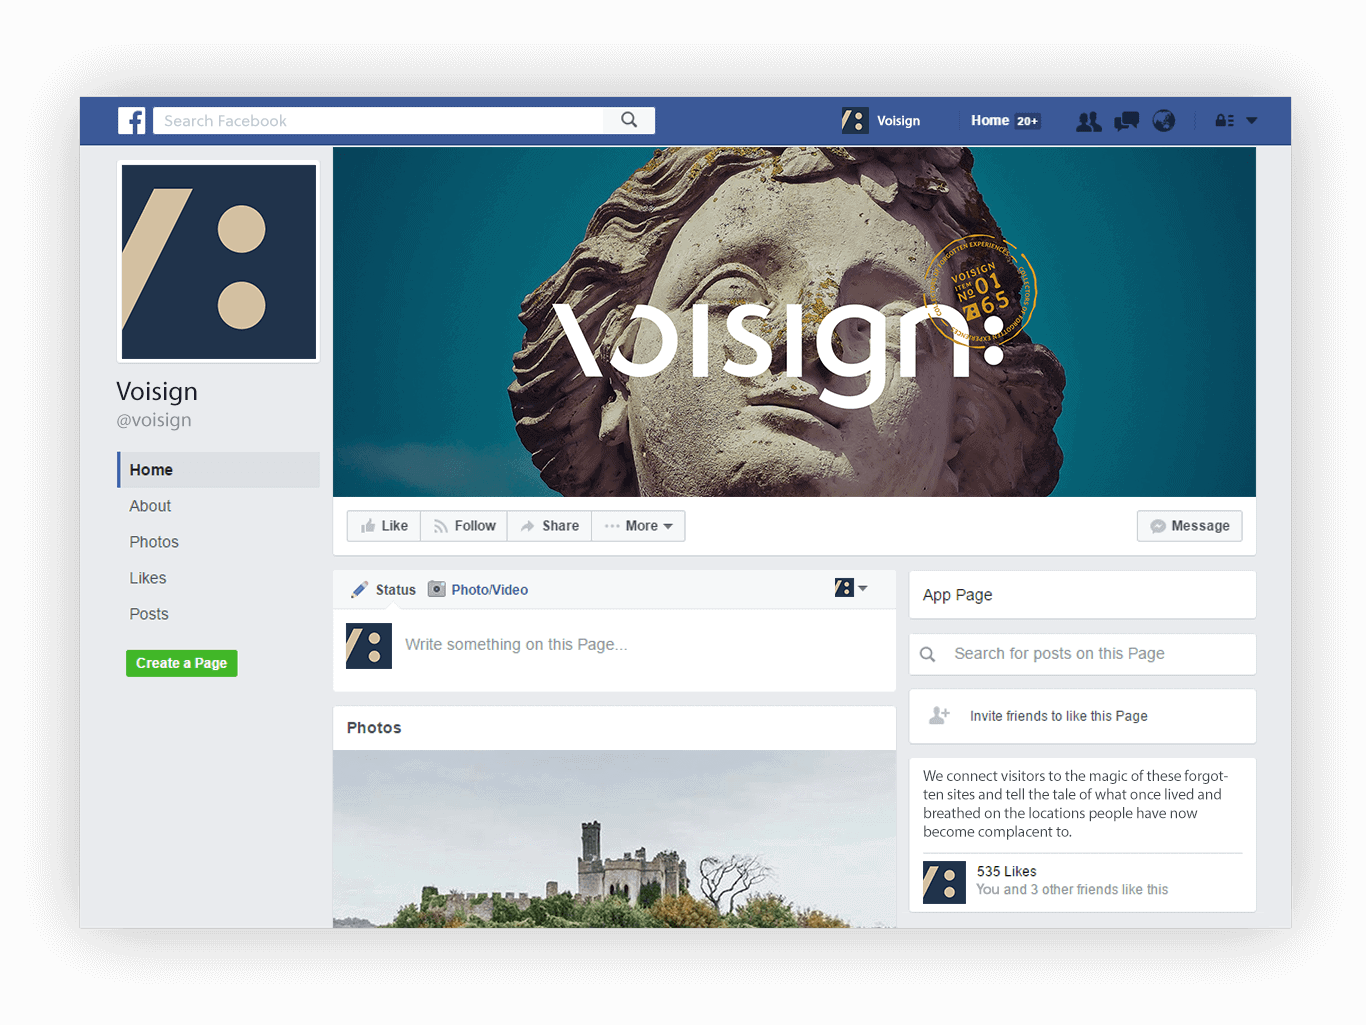 Mockup graphic of Voisign new brand identity applied to the Facebook cover image and profile image.